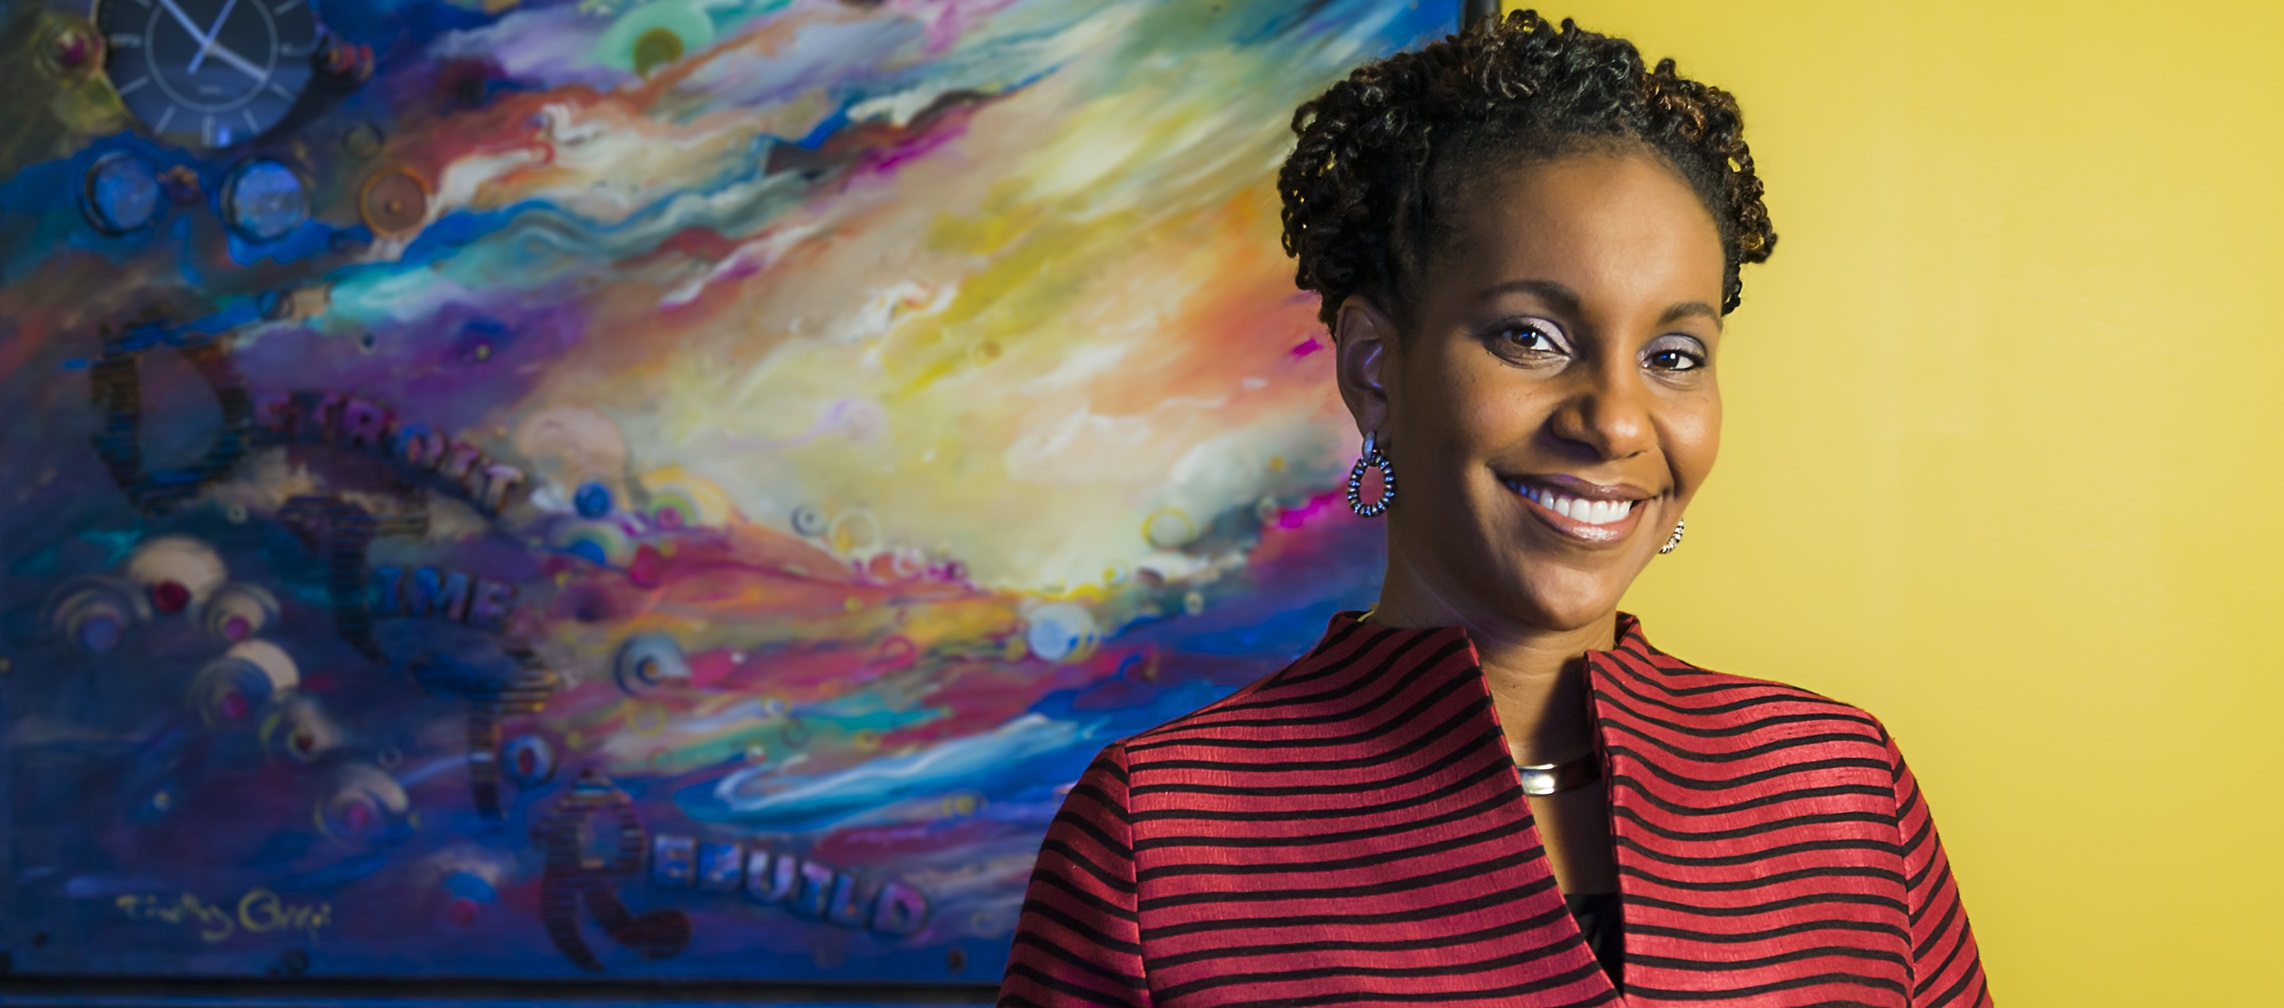 View of Tonya Matthews standing in front of a colorful painting.